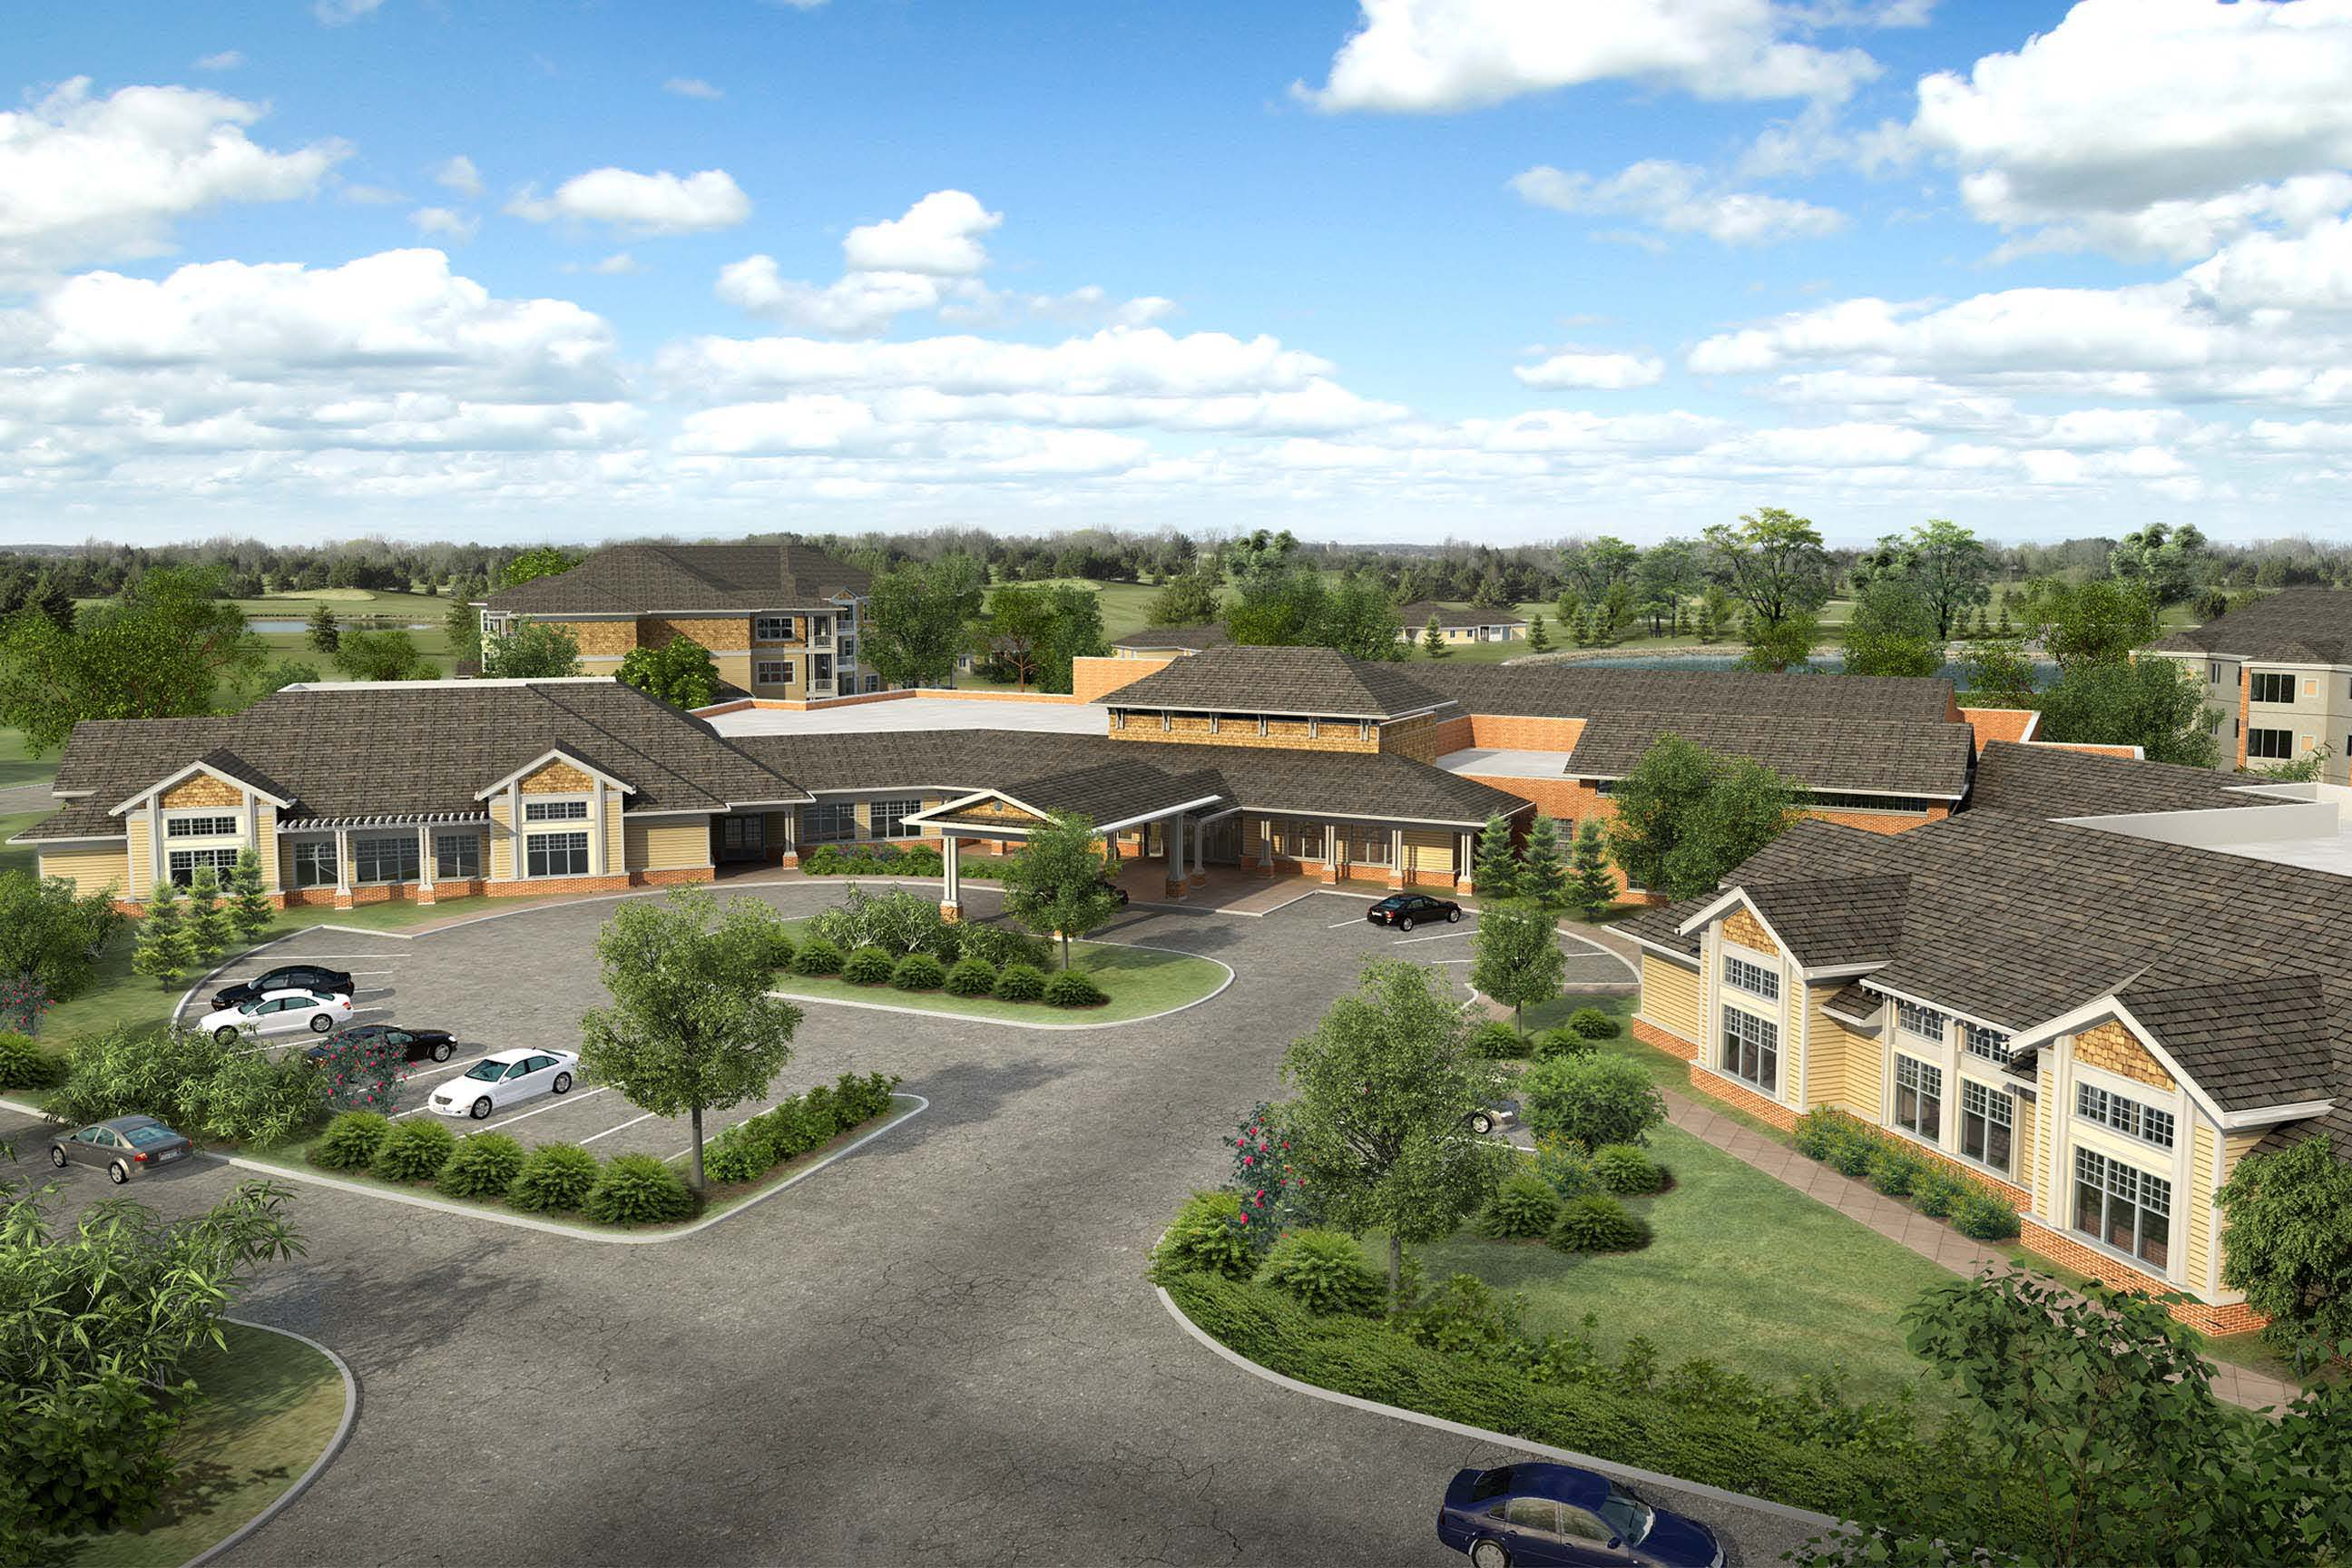 Plantation Village  Wilmingtons Retirement Living Leader for 25 Years  Announces Expansion